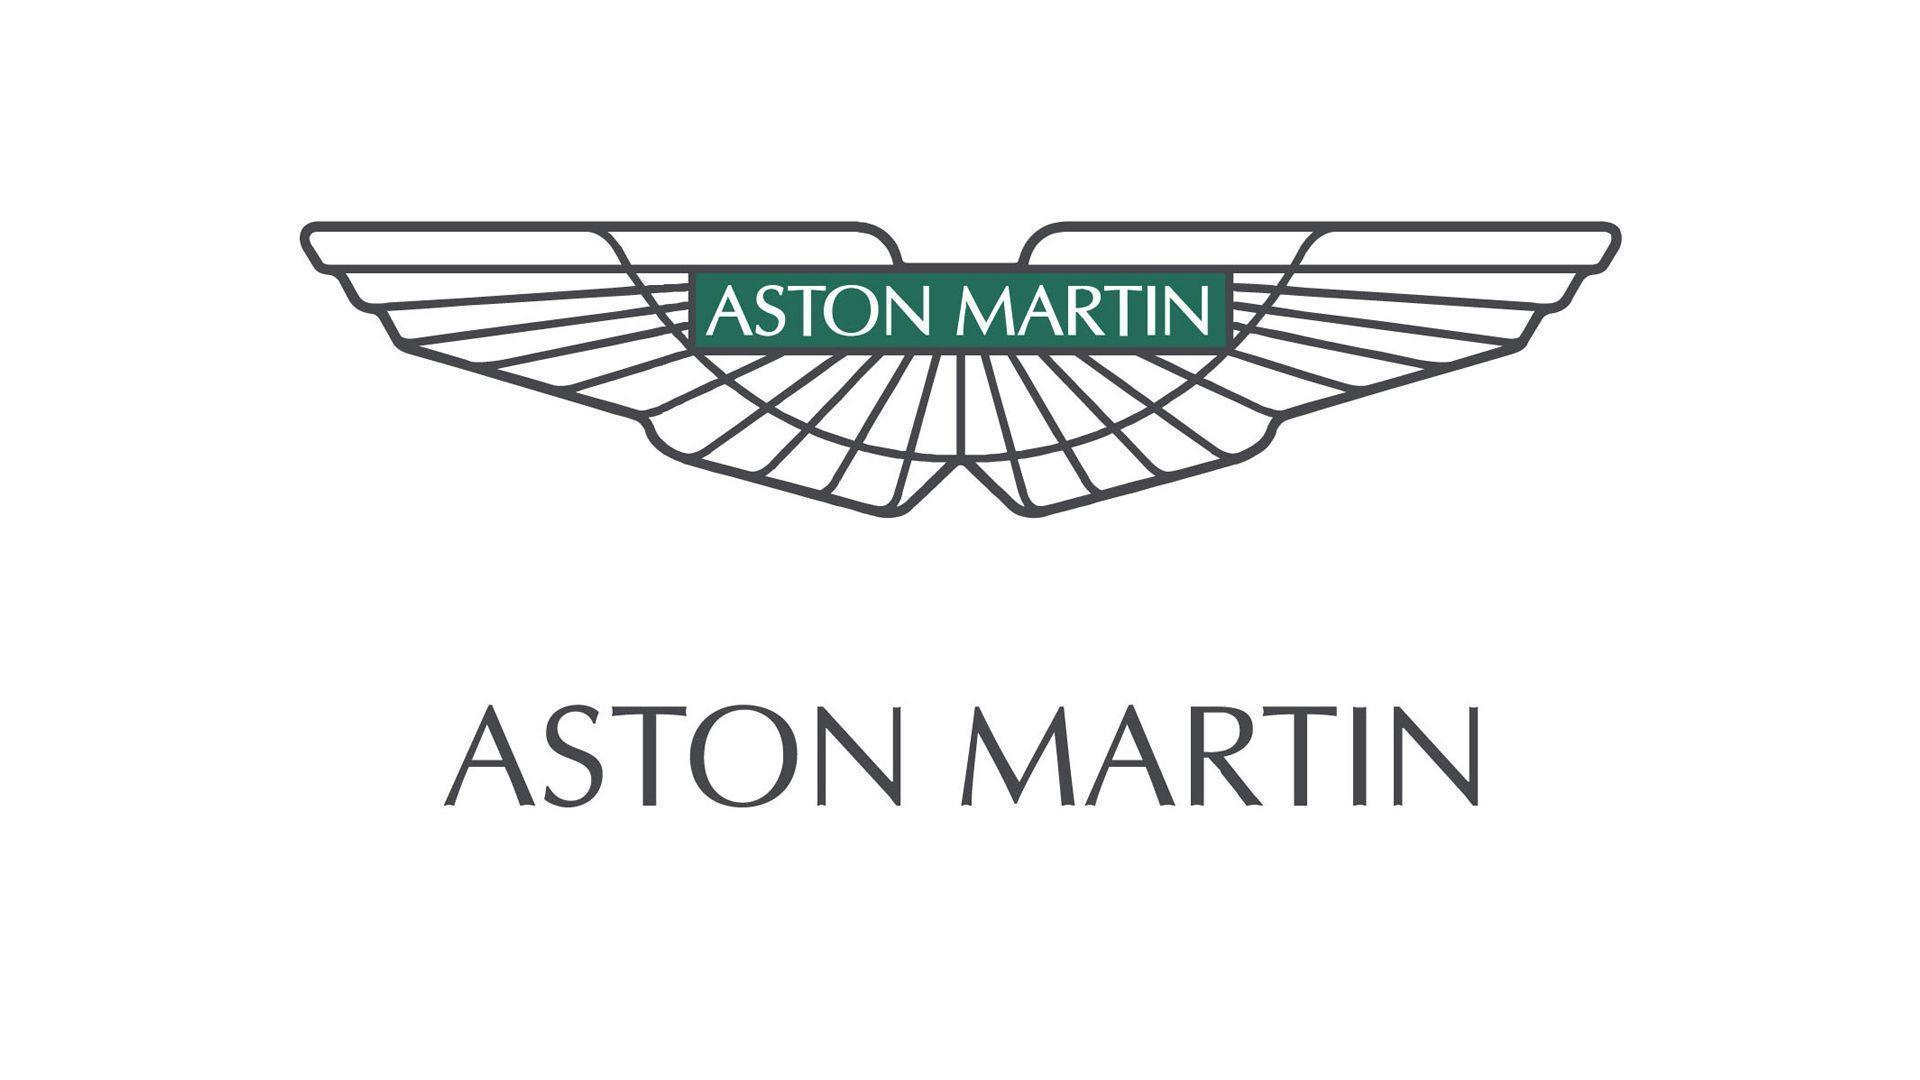 Aston Martin logo wallpapers